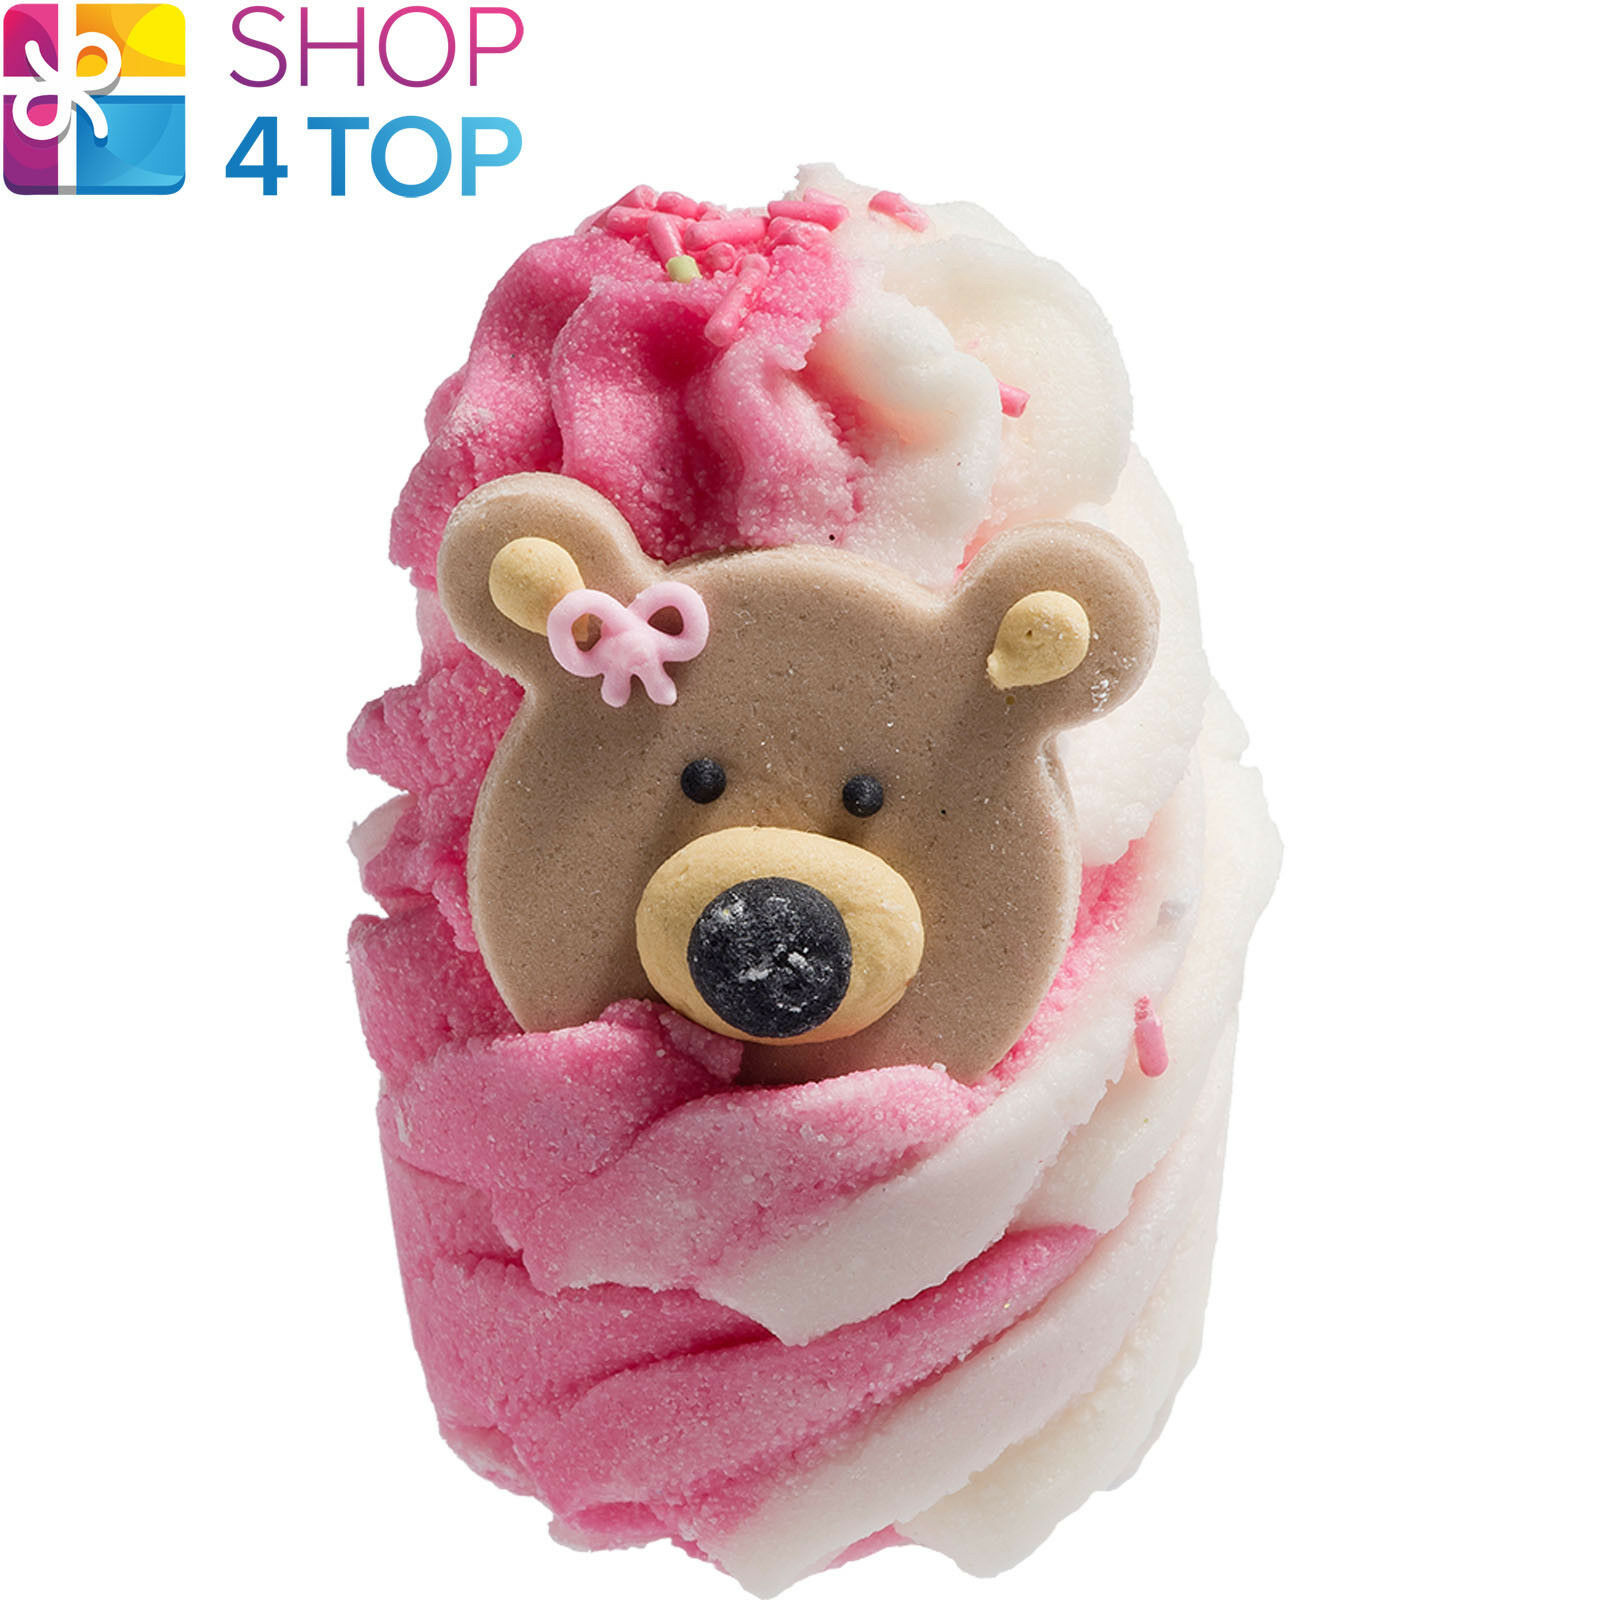 Primary image for TEDDY BEAR PICNIC BATH MALLOW BOMB COSMETICS STRAWBERRY HANDMADE NATURAL NEW